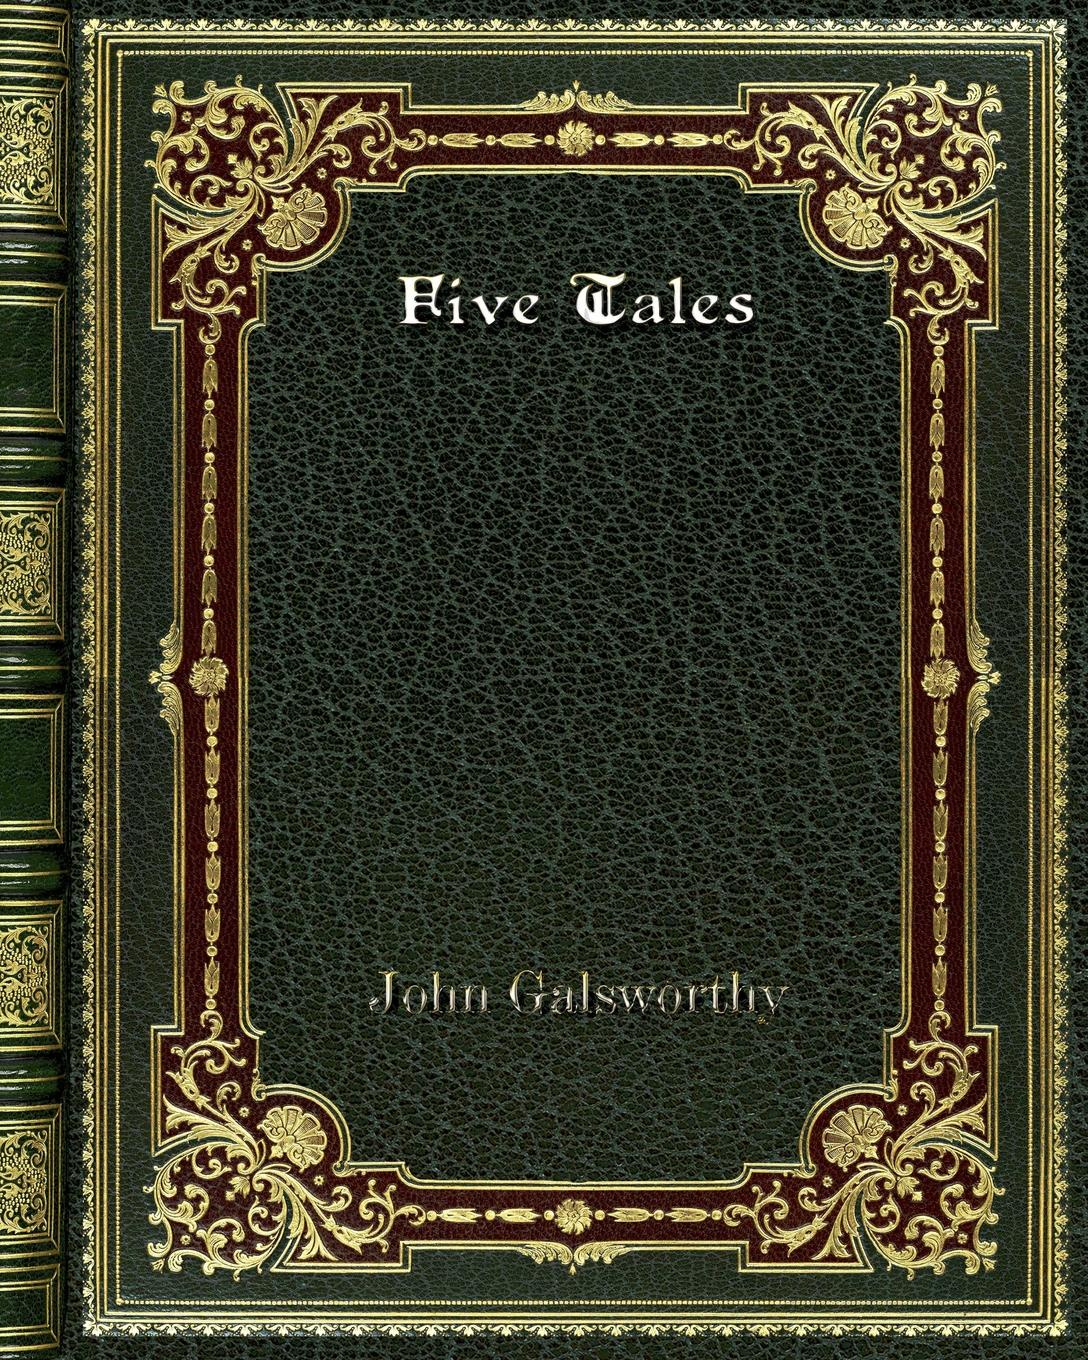 John Galsworthy Five Tales